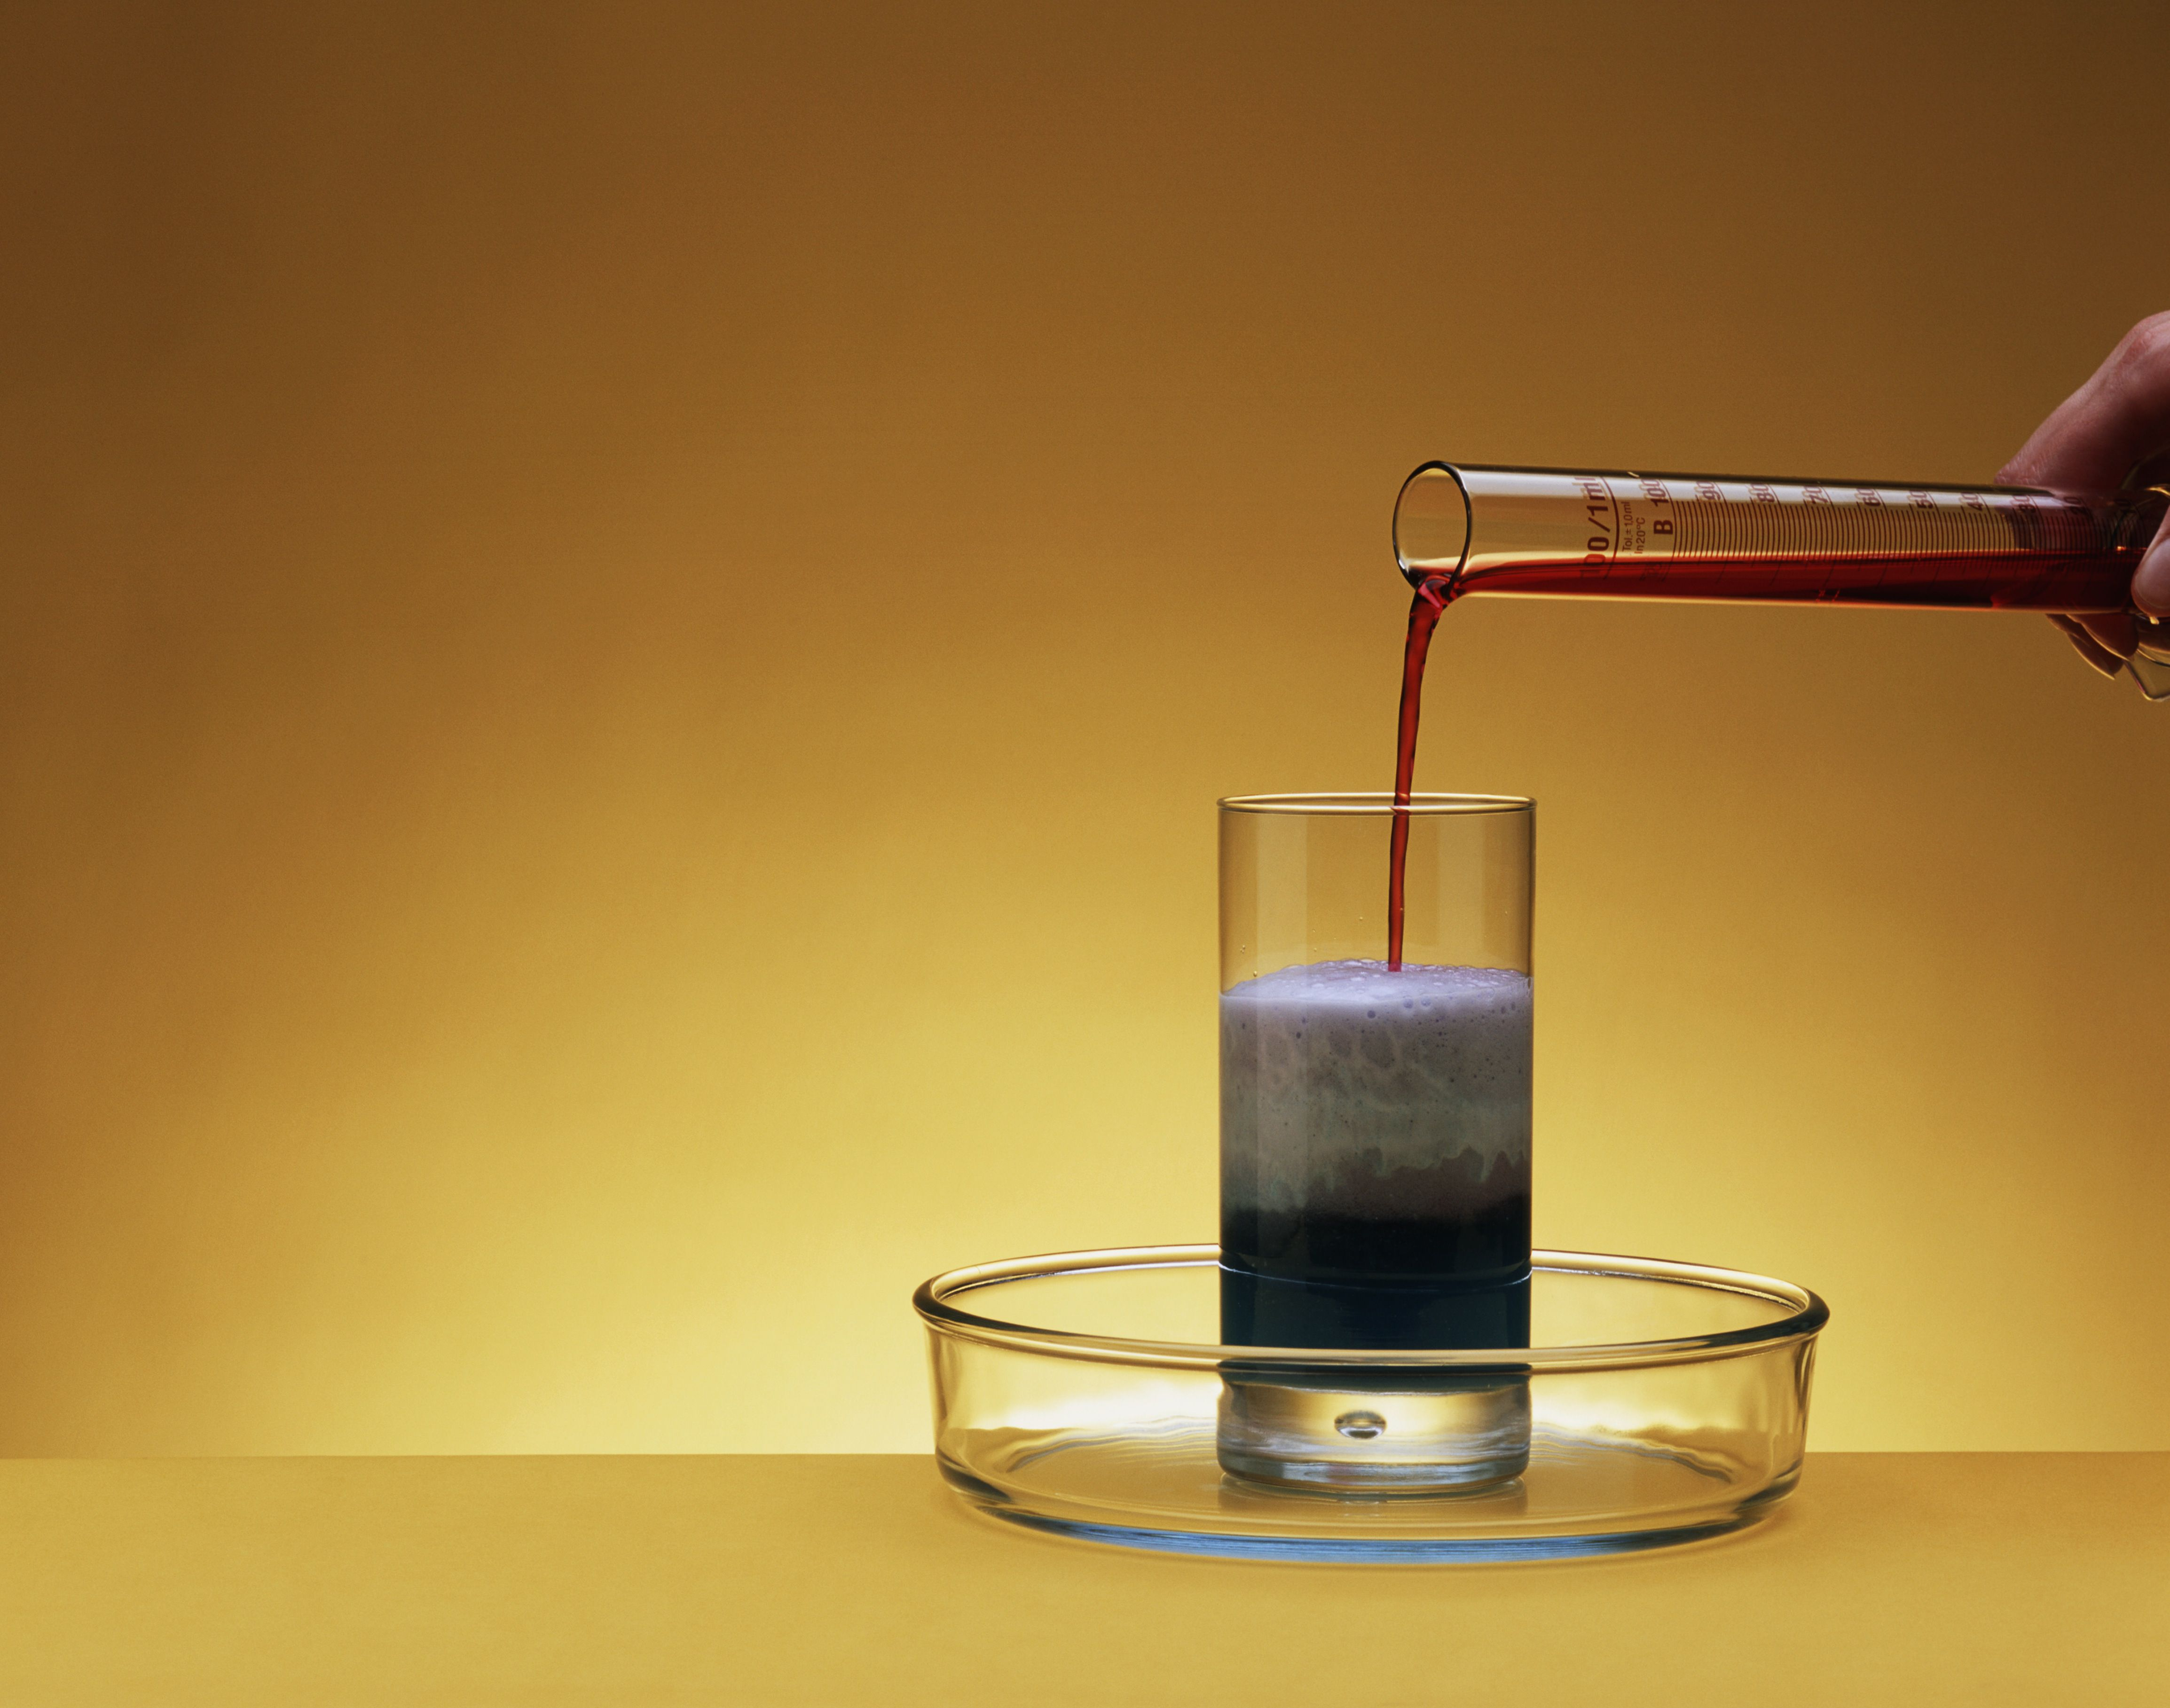 How Many Types Of Chemical Reactions Are There